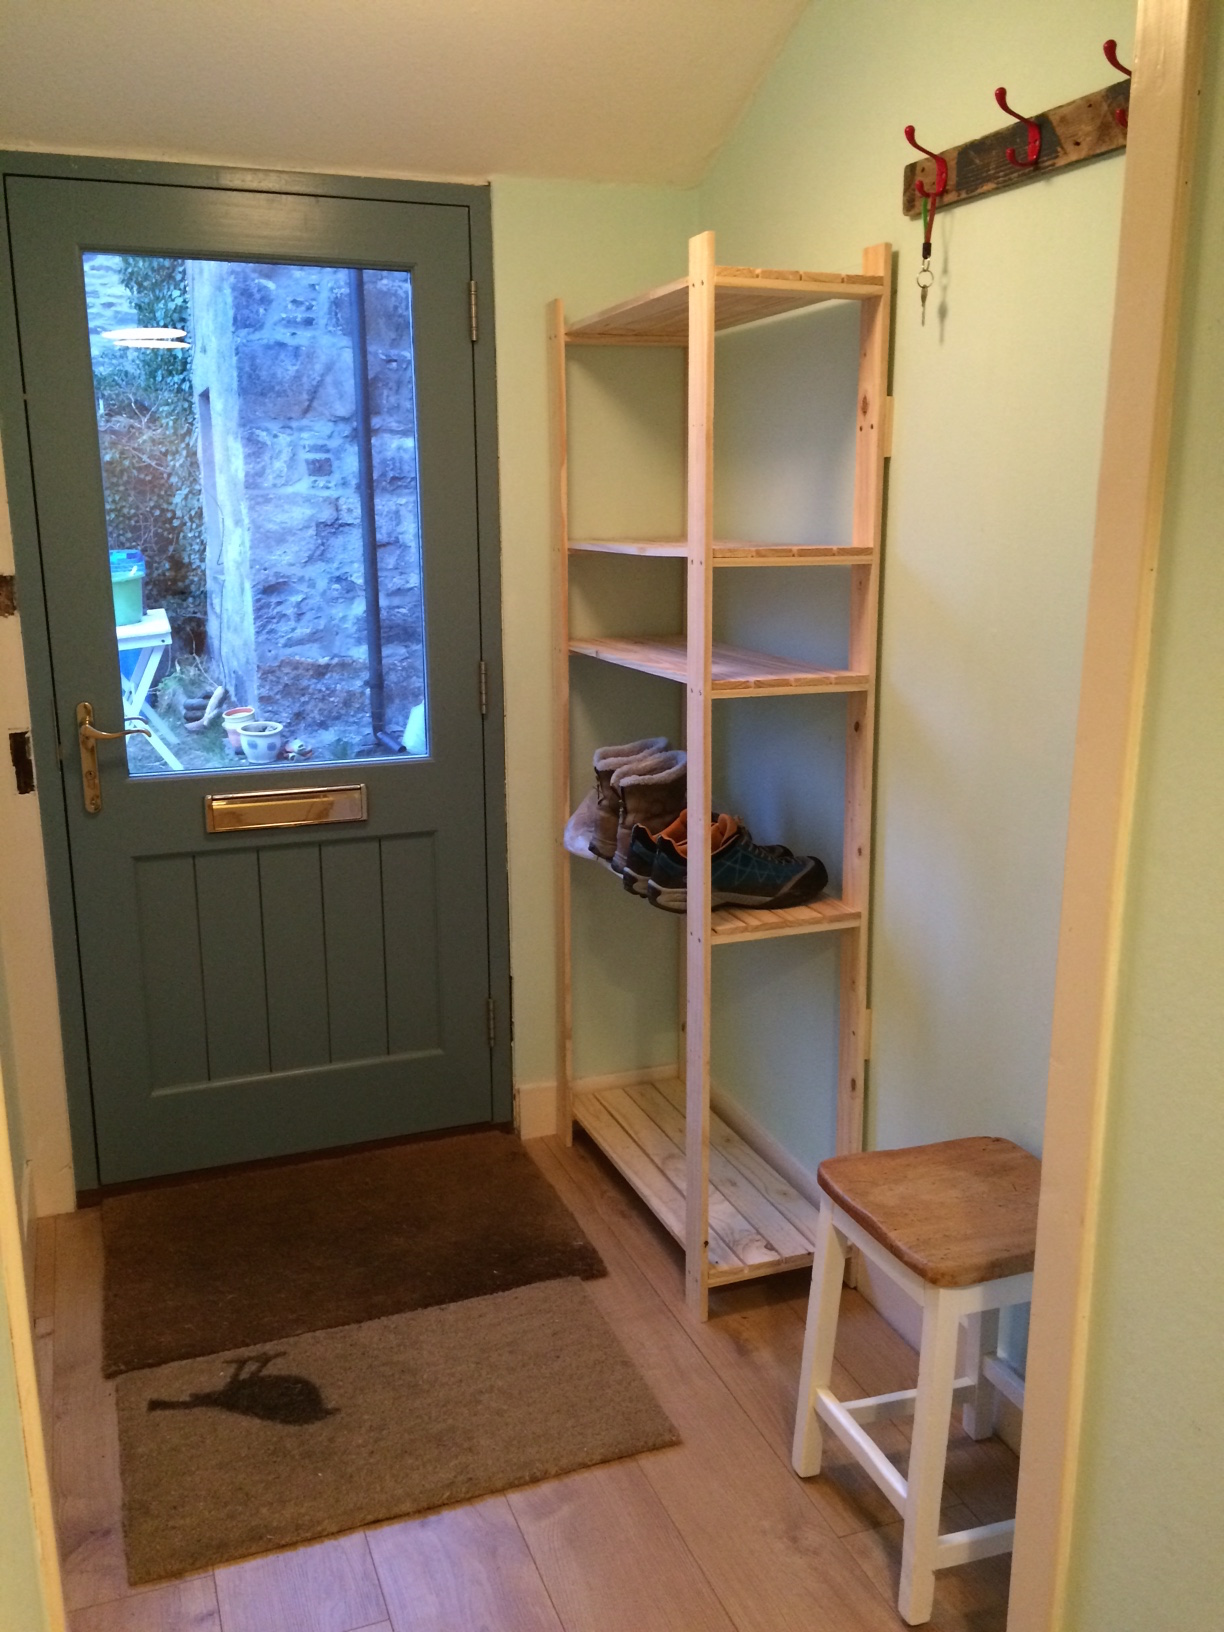 Plenty of space to store boots and jackets in the porch